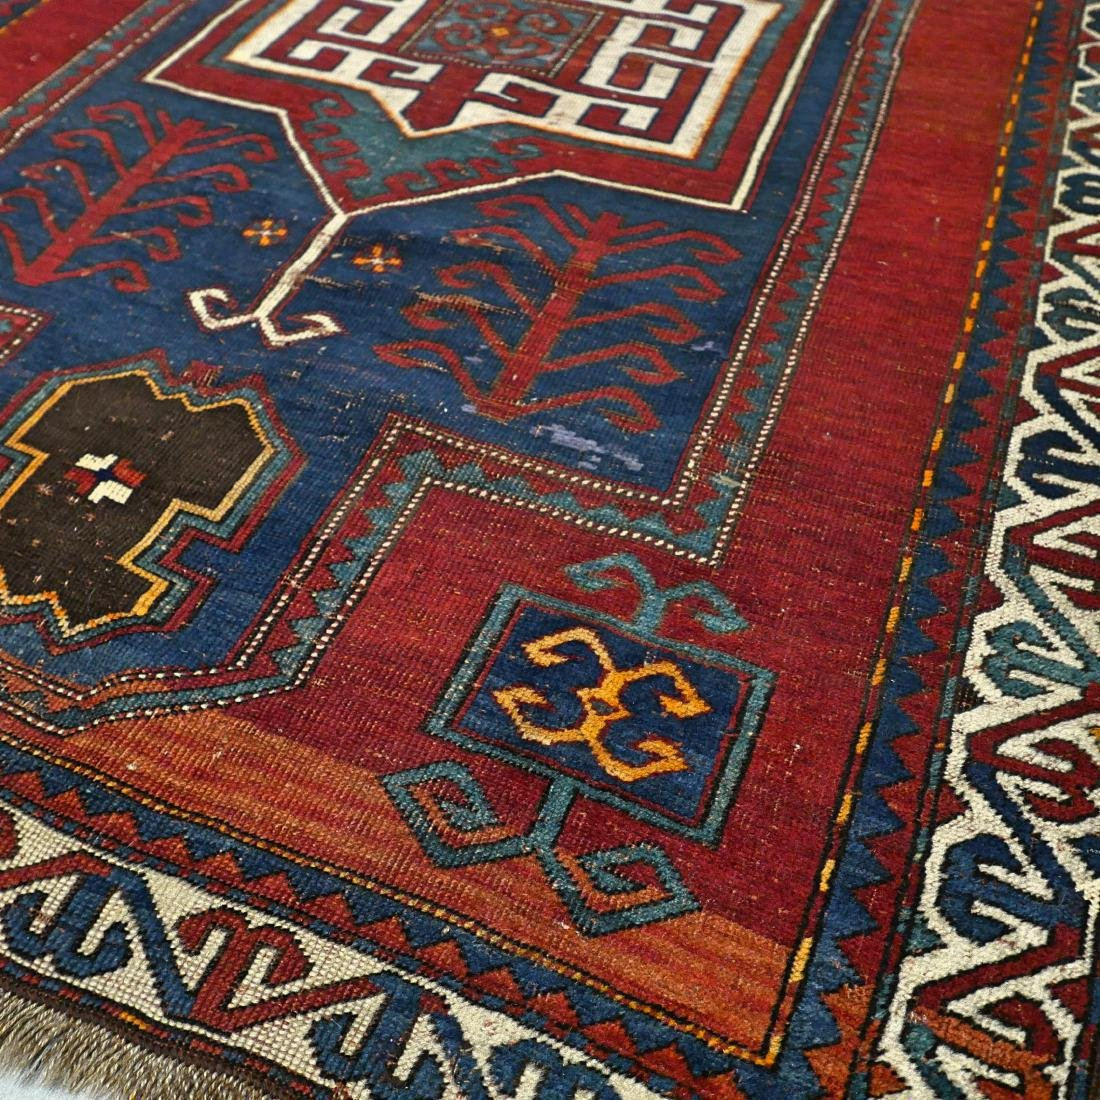 6.6 x 4.6 Caucasian Kazak rug - early 1900s - - 8